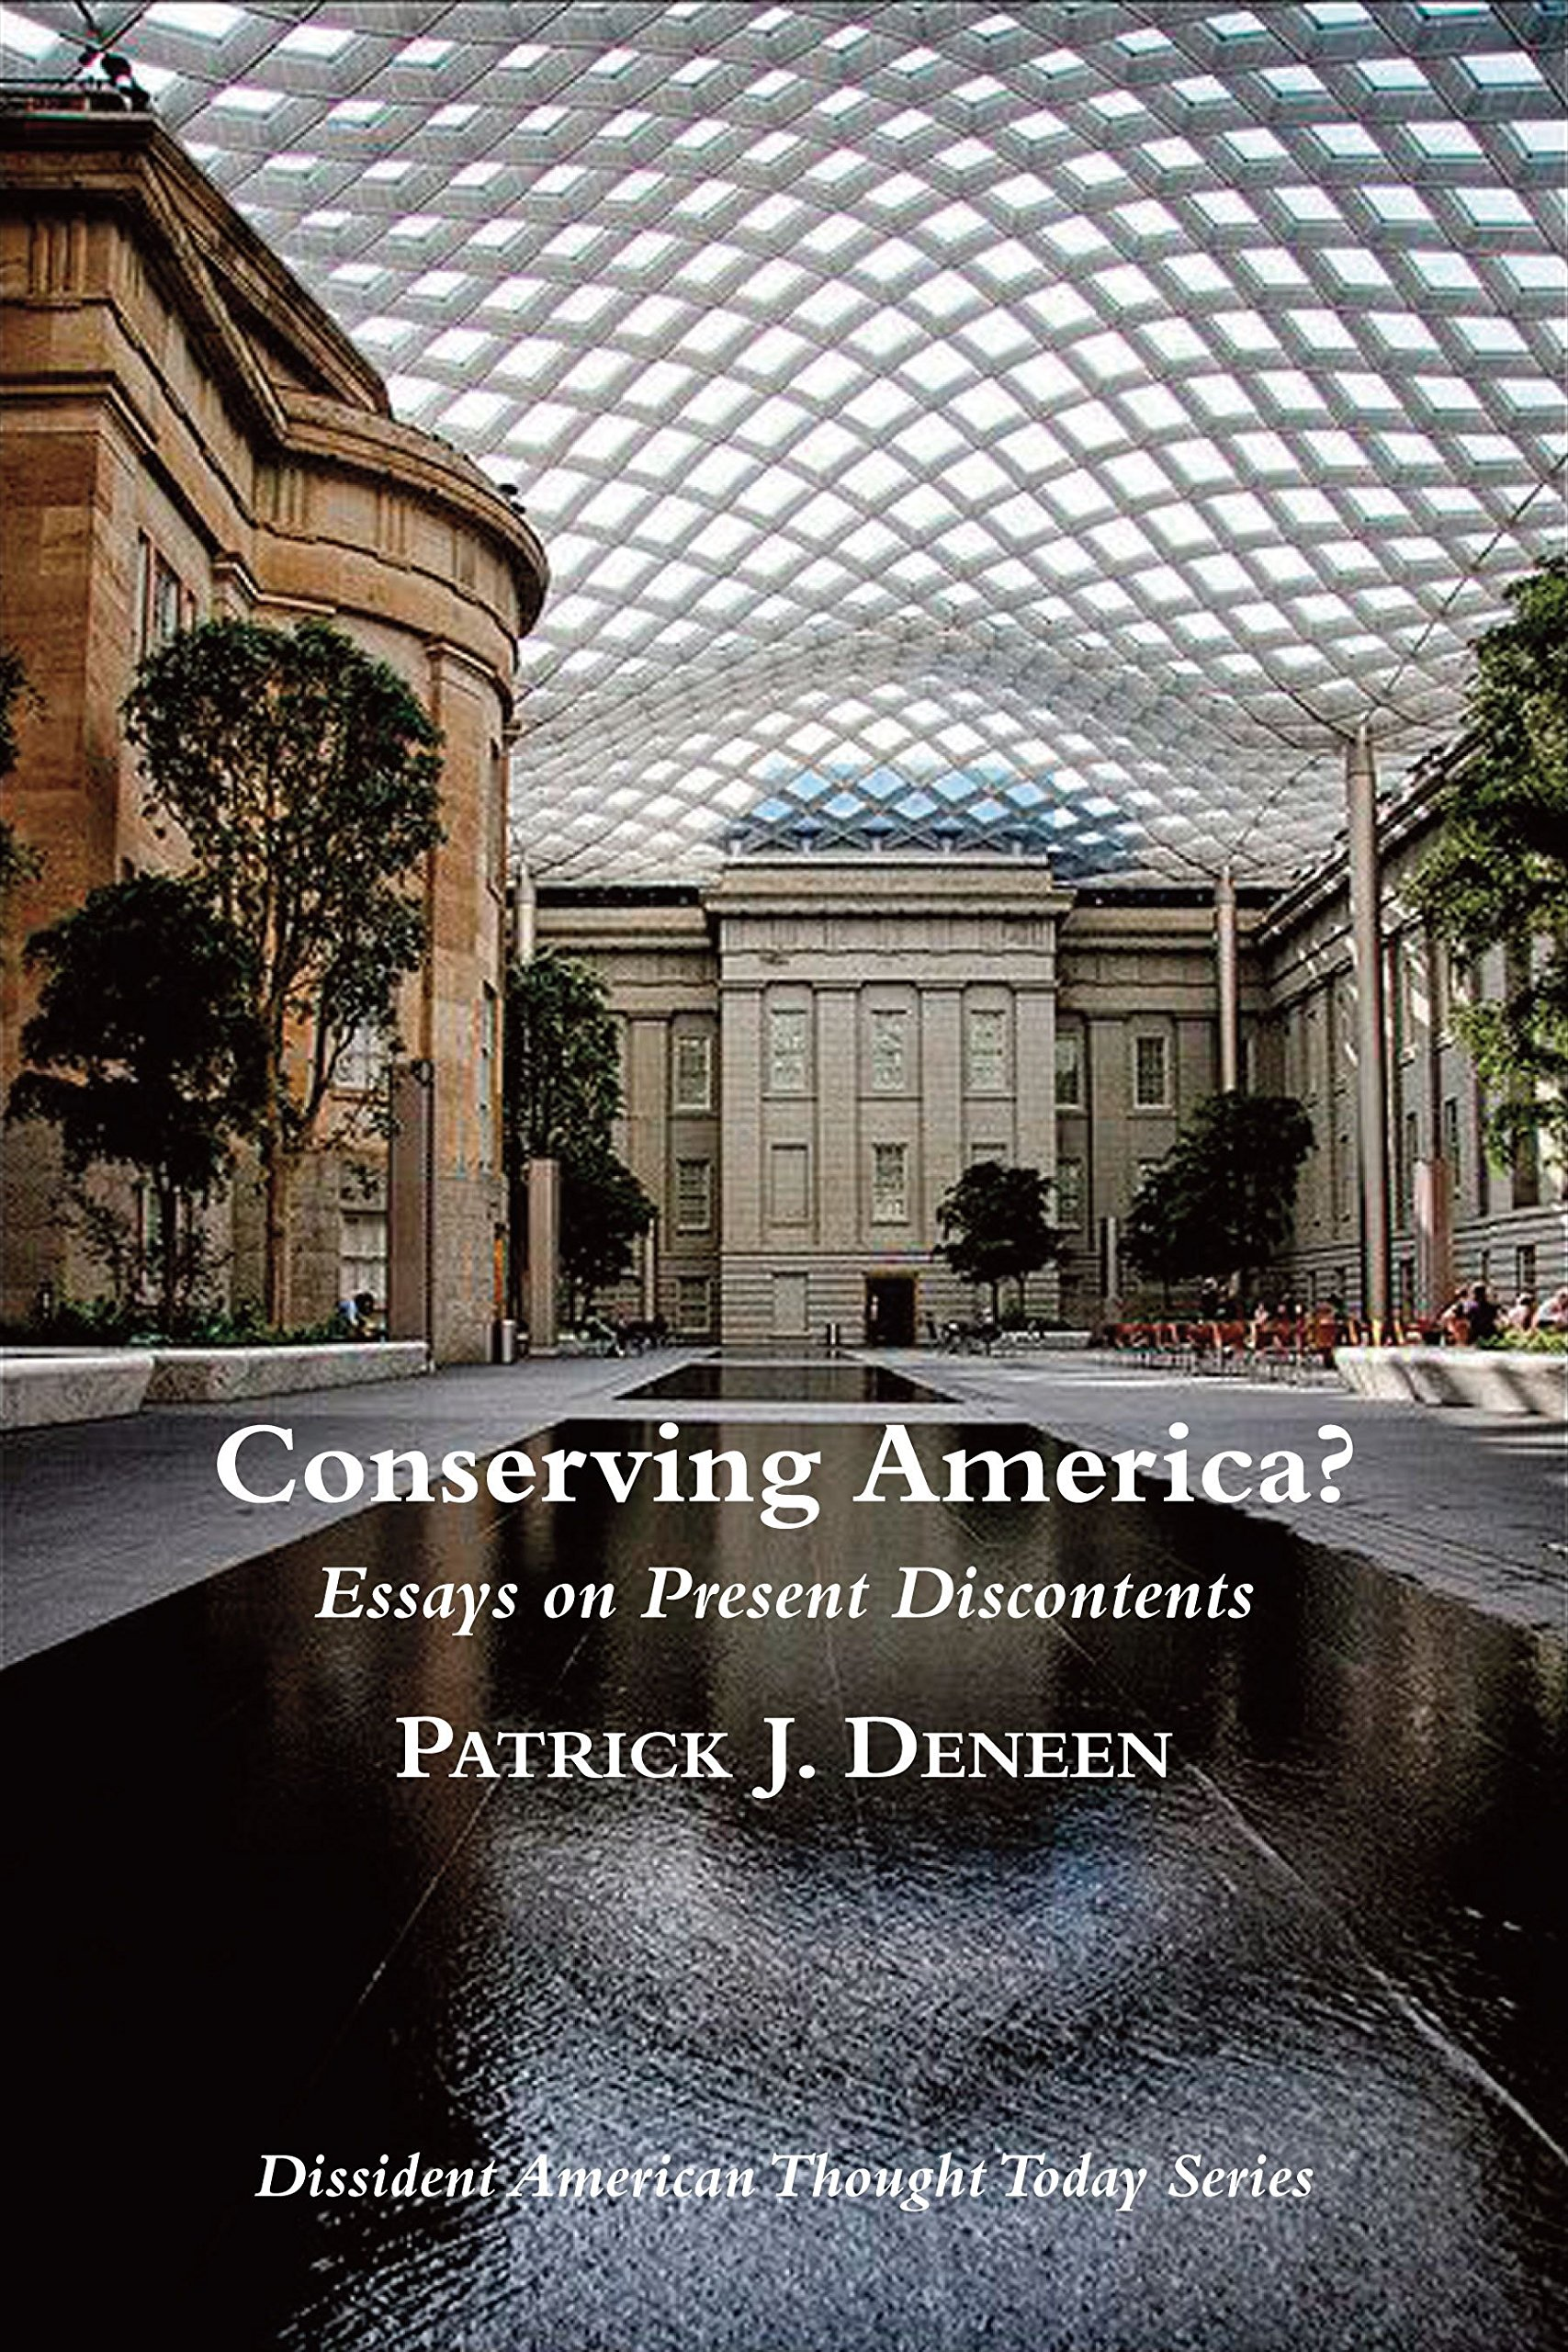 conserving america essays on present discontents dissident conserving america essays on present discontents dissident american thought today patrick j deneen 9781587319150 com books